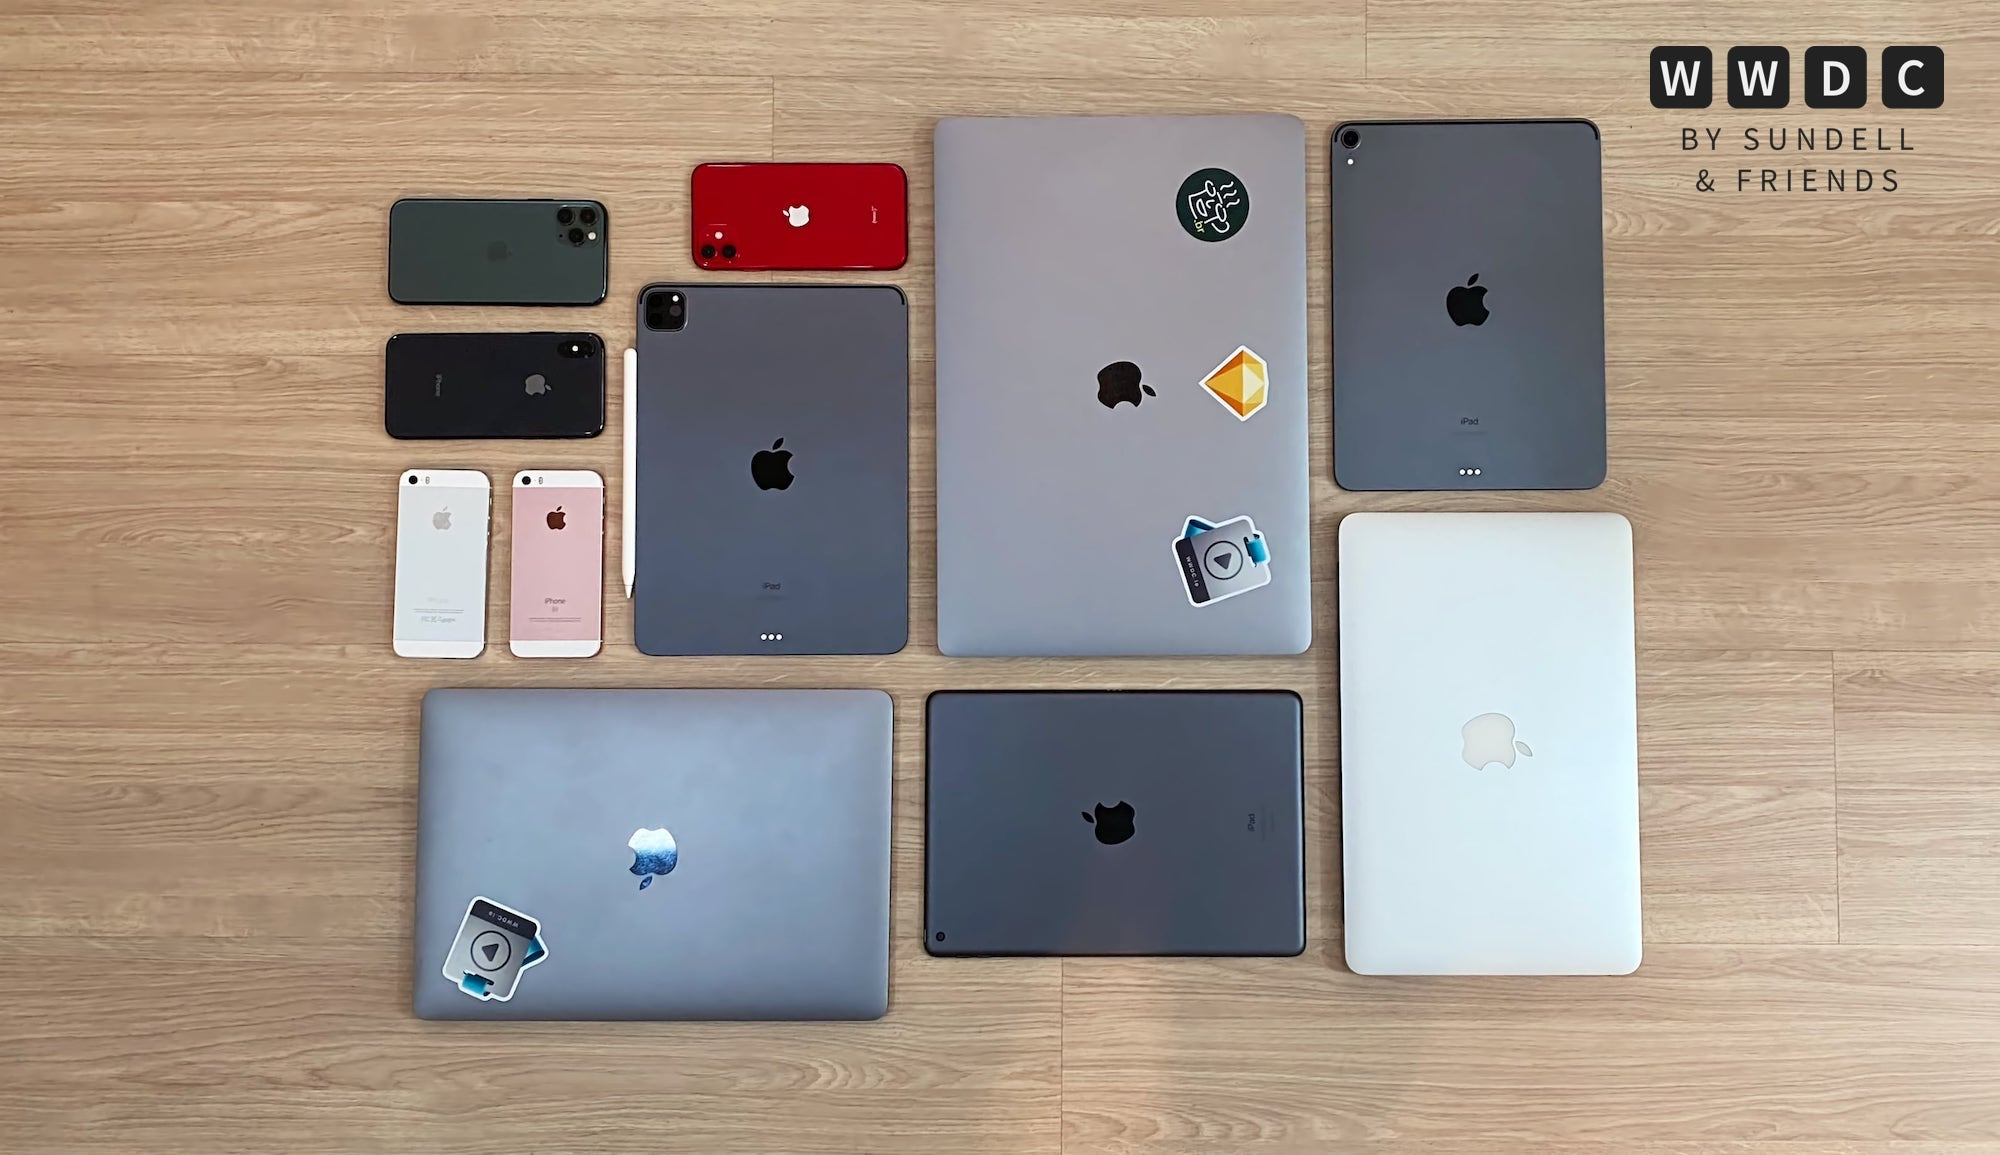 A lot of Apple devices in a grid, shot from above